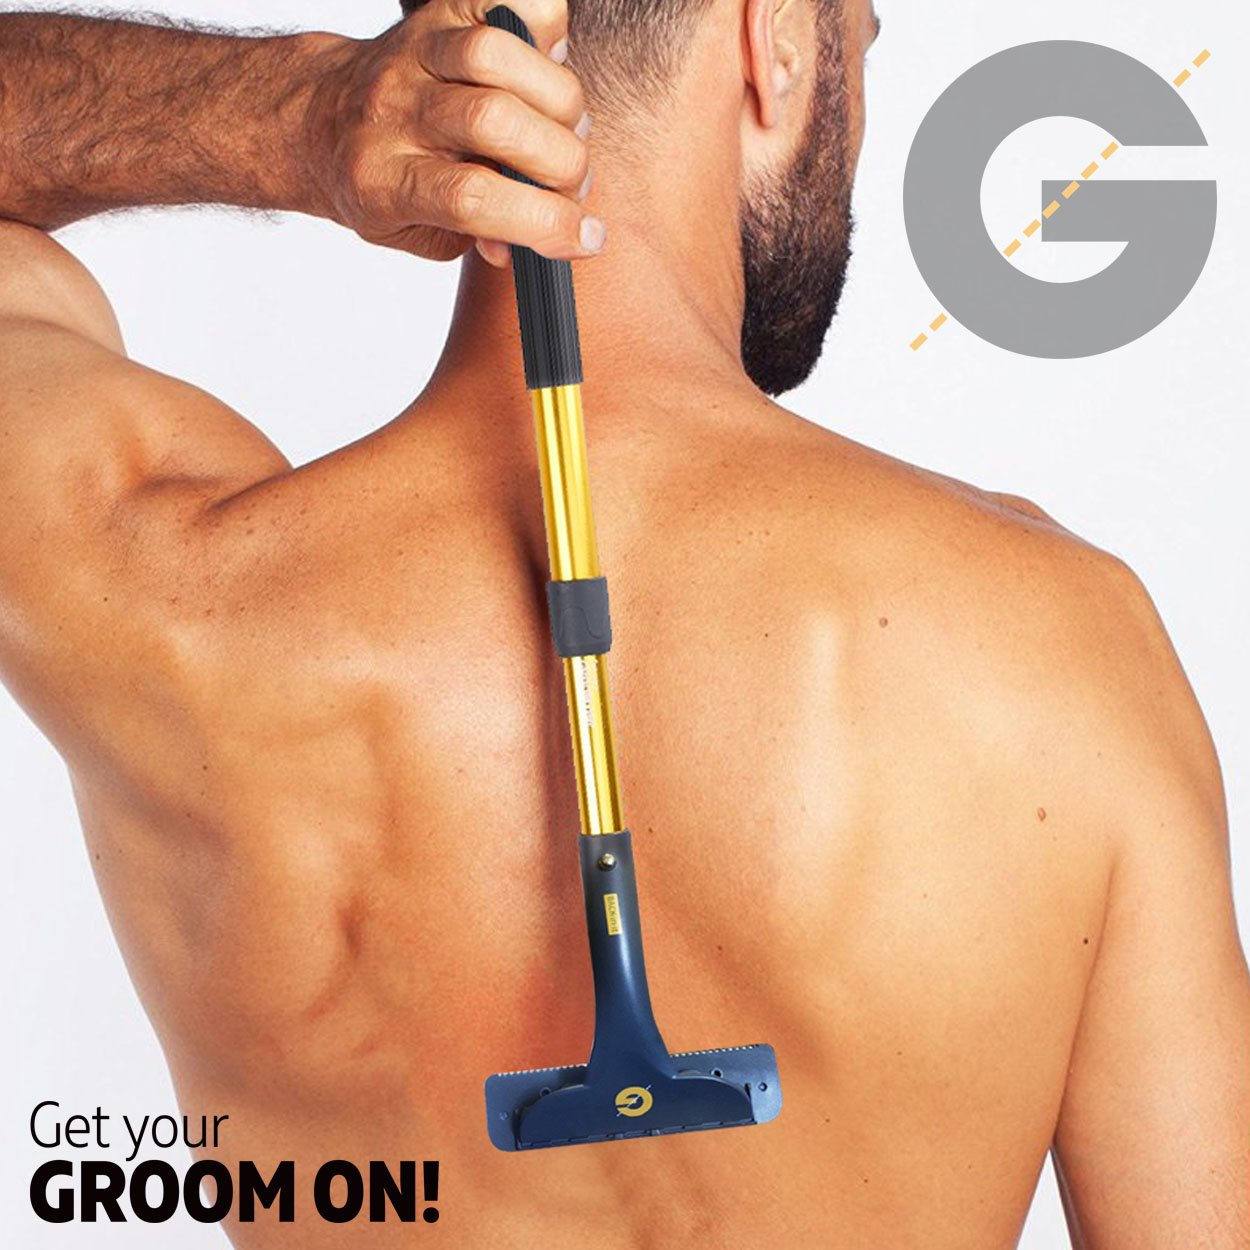 Groomarang Back-in-It Back and Body Hair Removal Device Multi Functioning &  Extendable Mens Shave or Hair Removal Cream Tool: Amazon.co.uk: Health ...